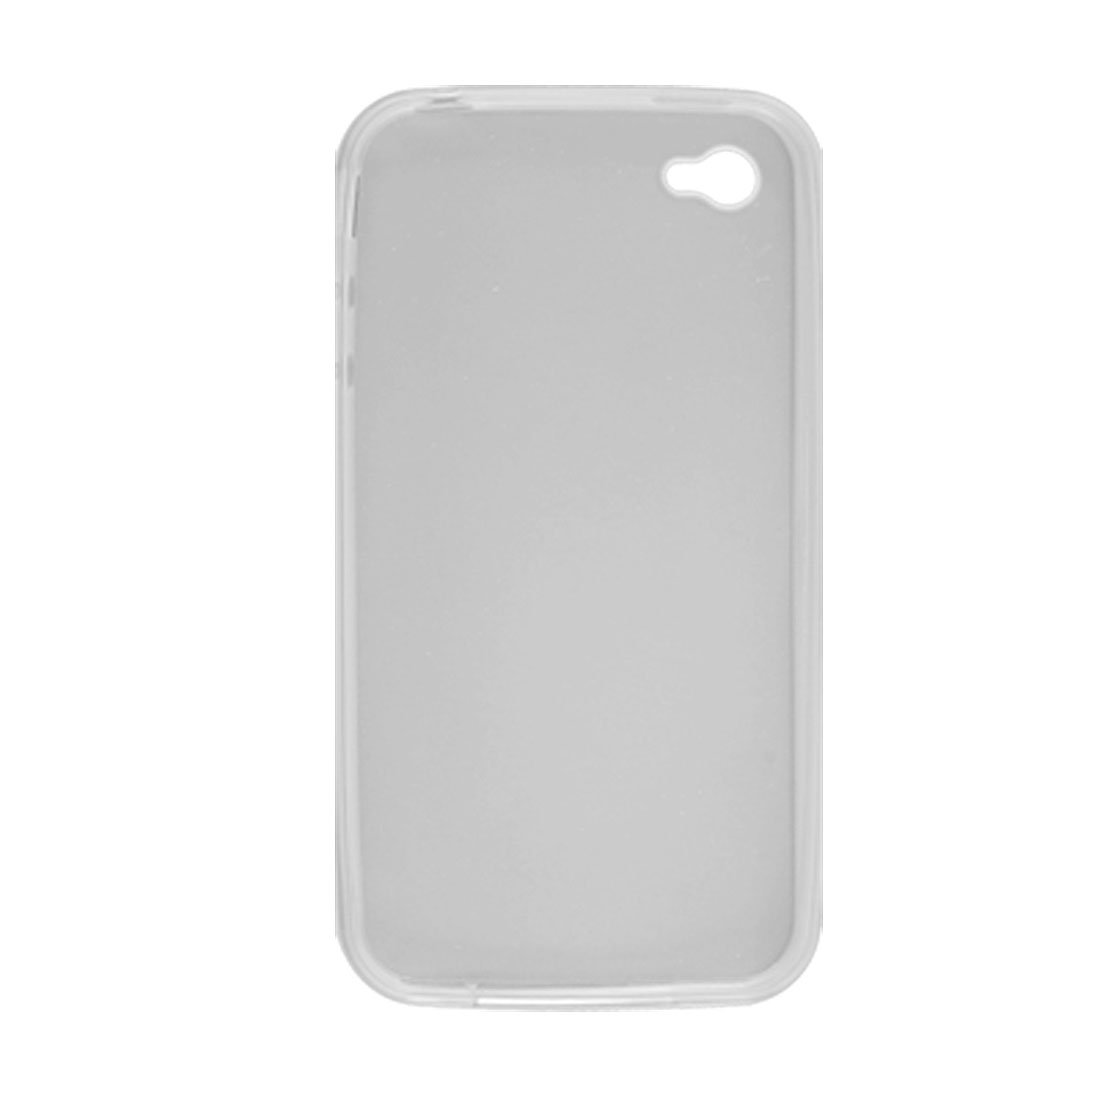 Soft Plastic Clear White Case Cover + Screen Guard for iPhone 4 4G